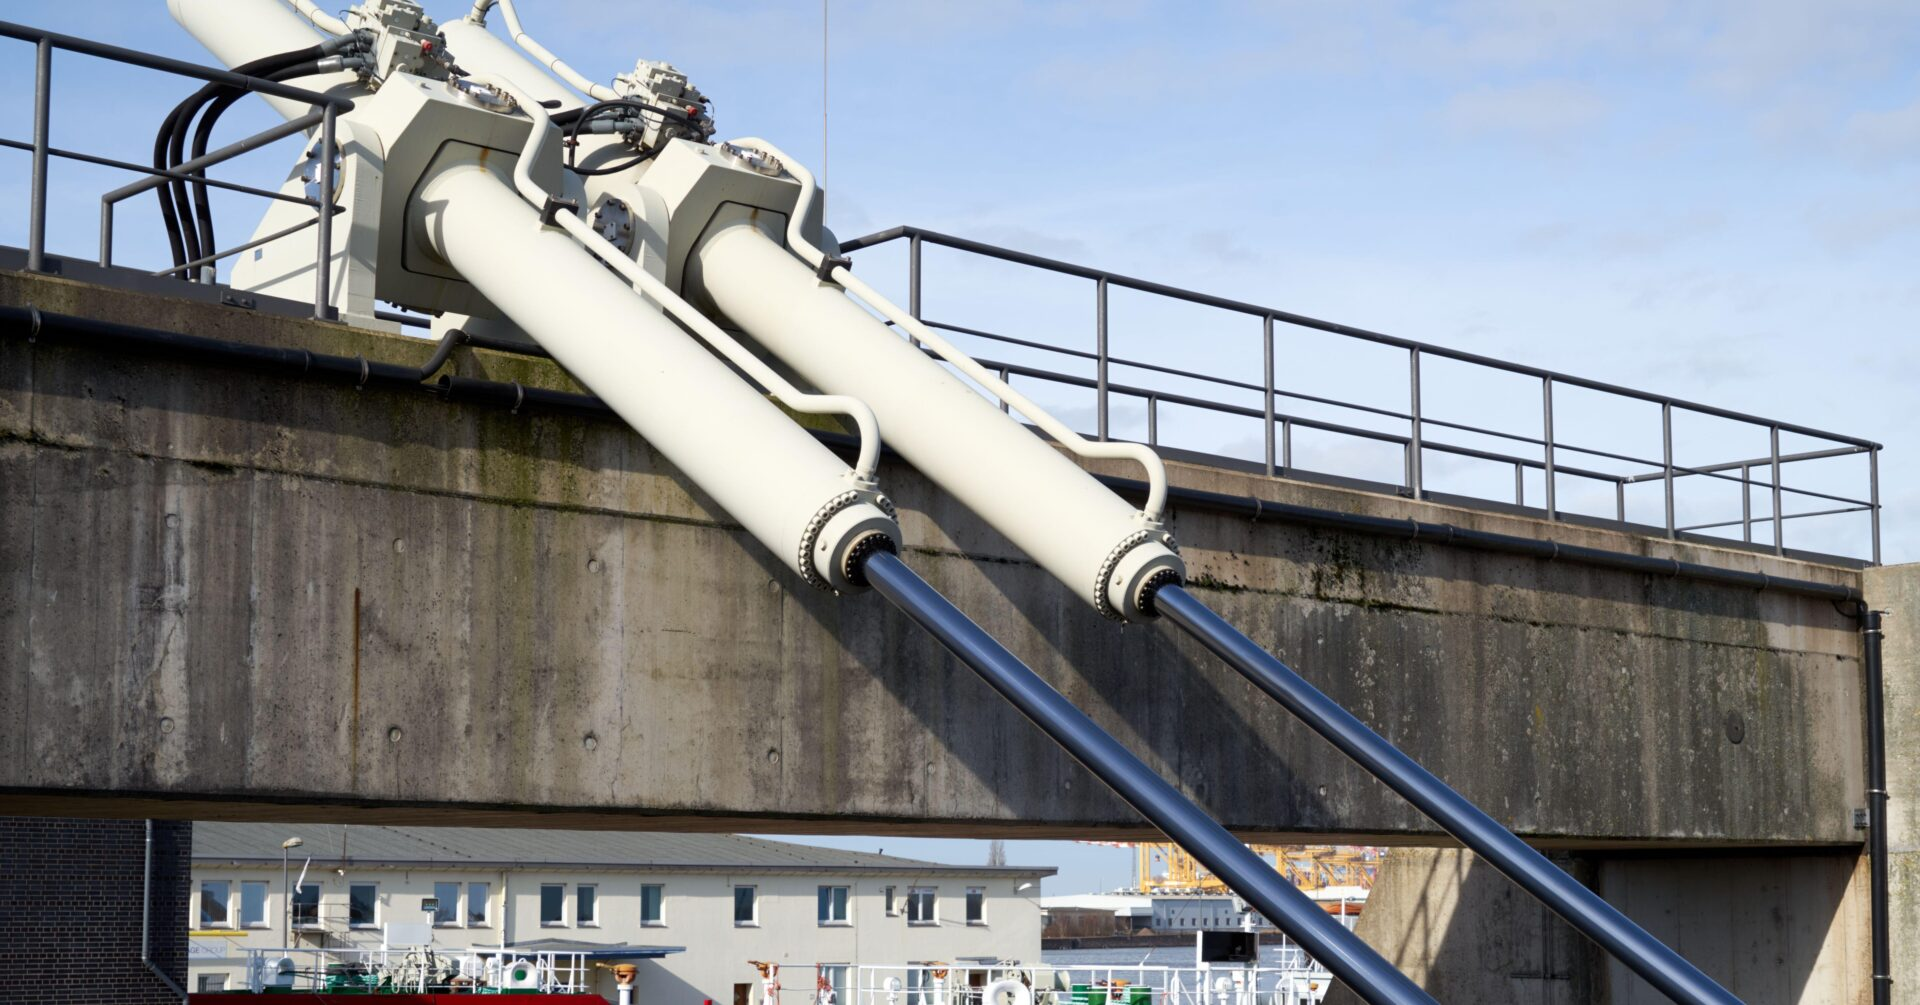 2F36FKW Large hydraulic cylinders for moving a swing bridge over a harbor basin